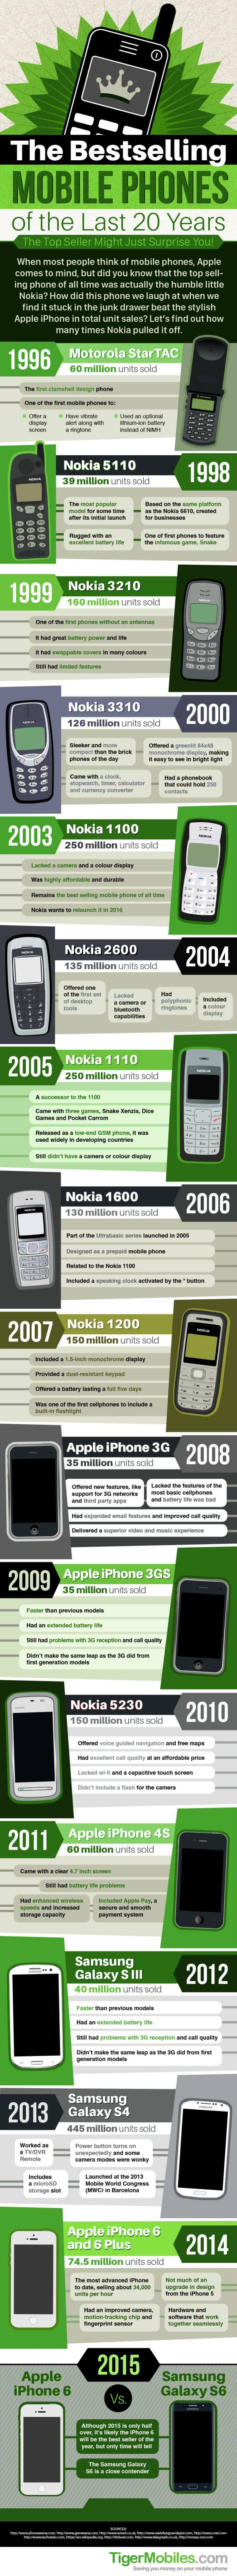 Best Selling mobile phones in the worlds